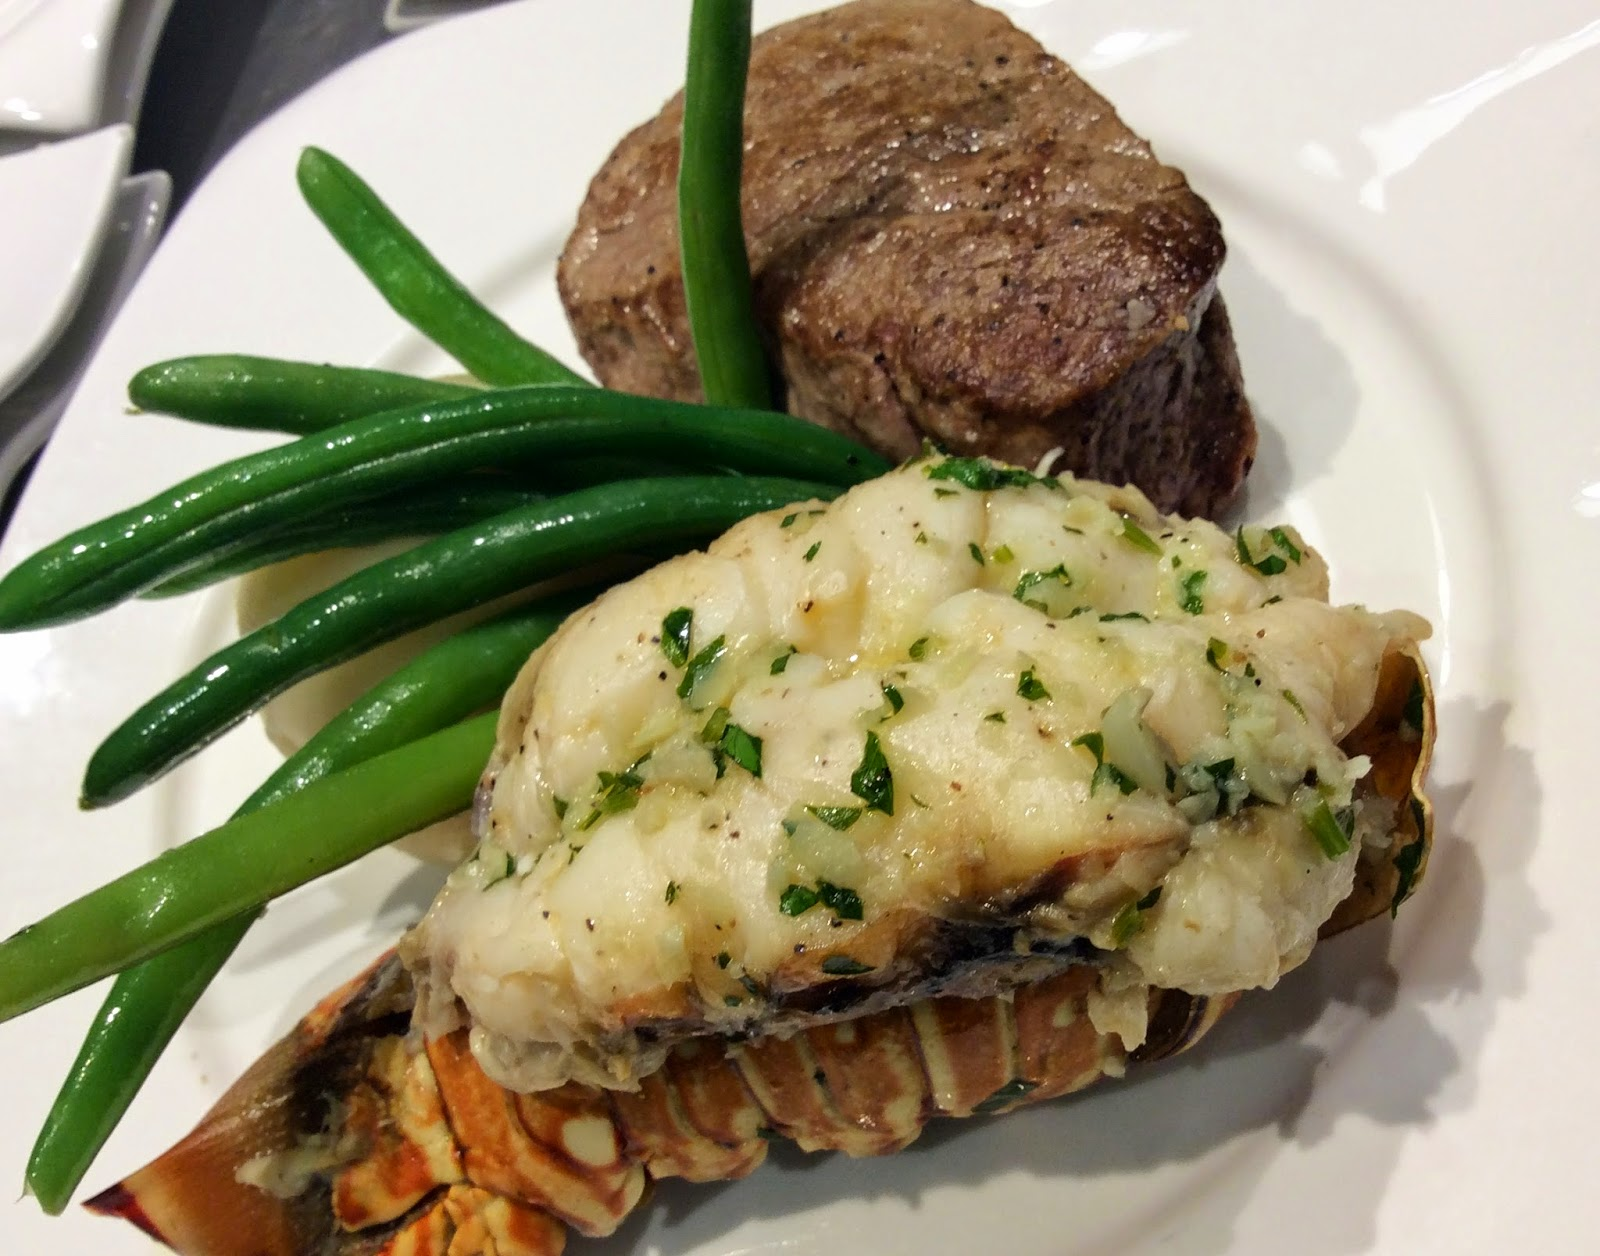 Filet Mignon, Lobster Tail, Wedding Food, Fine Dining, Culinary Art Catering